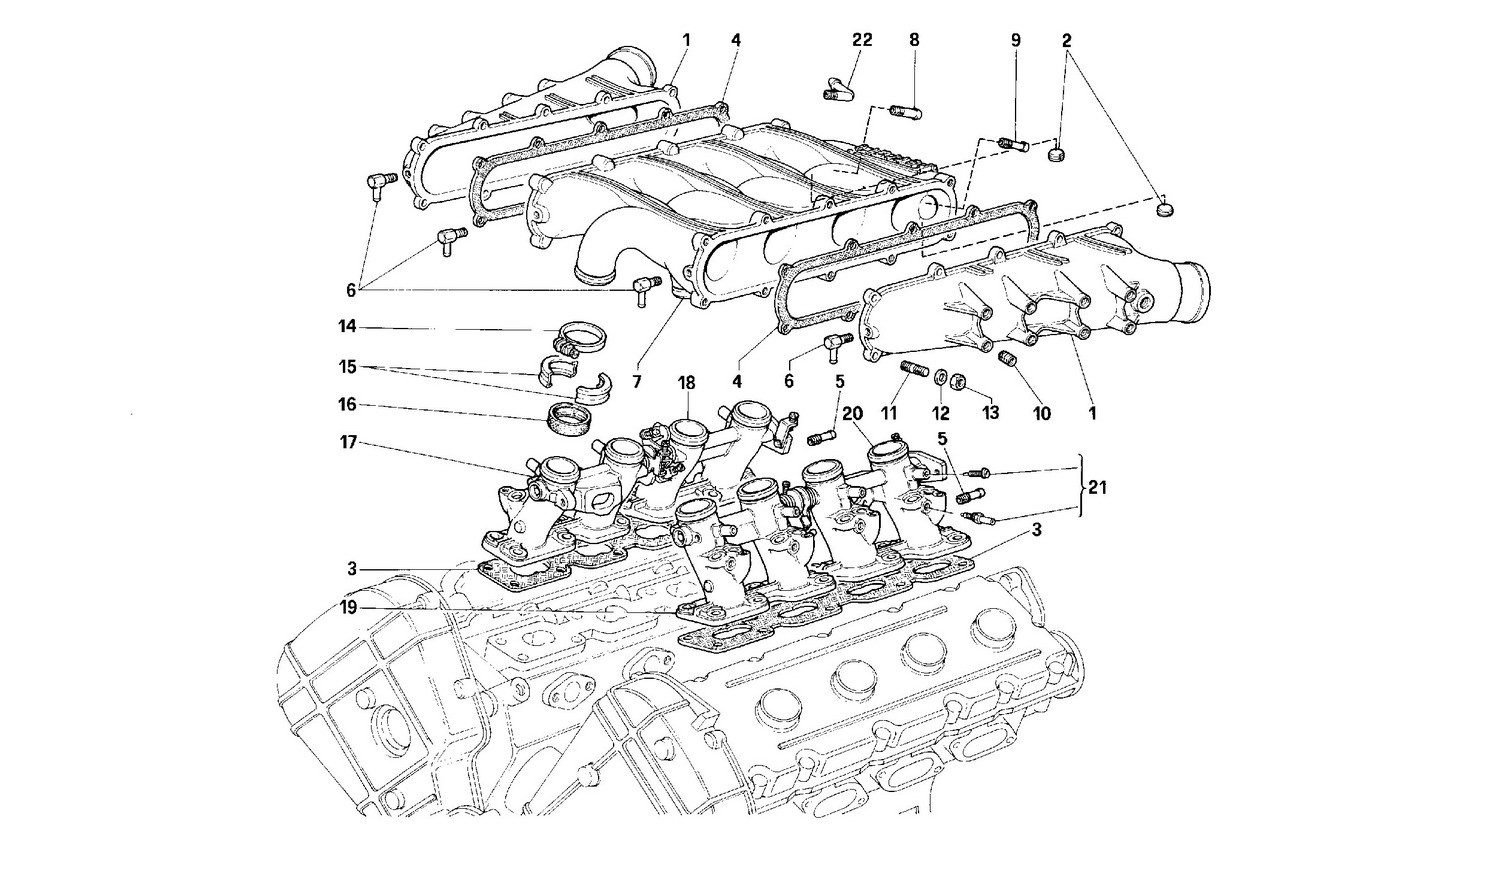 Manifold and throttle bodies